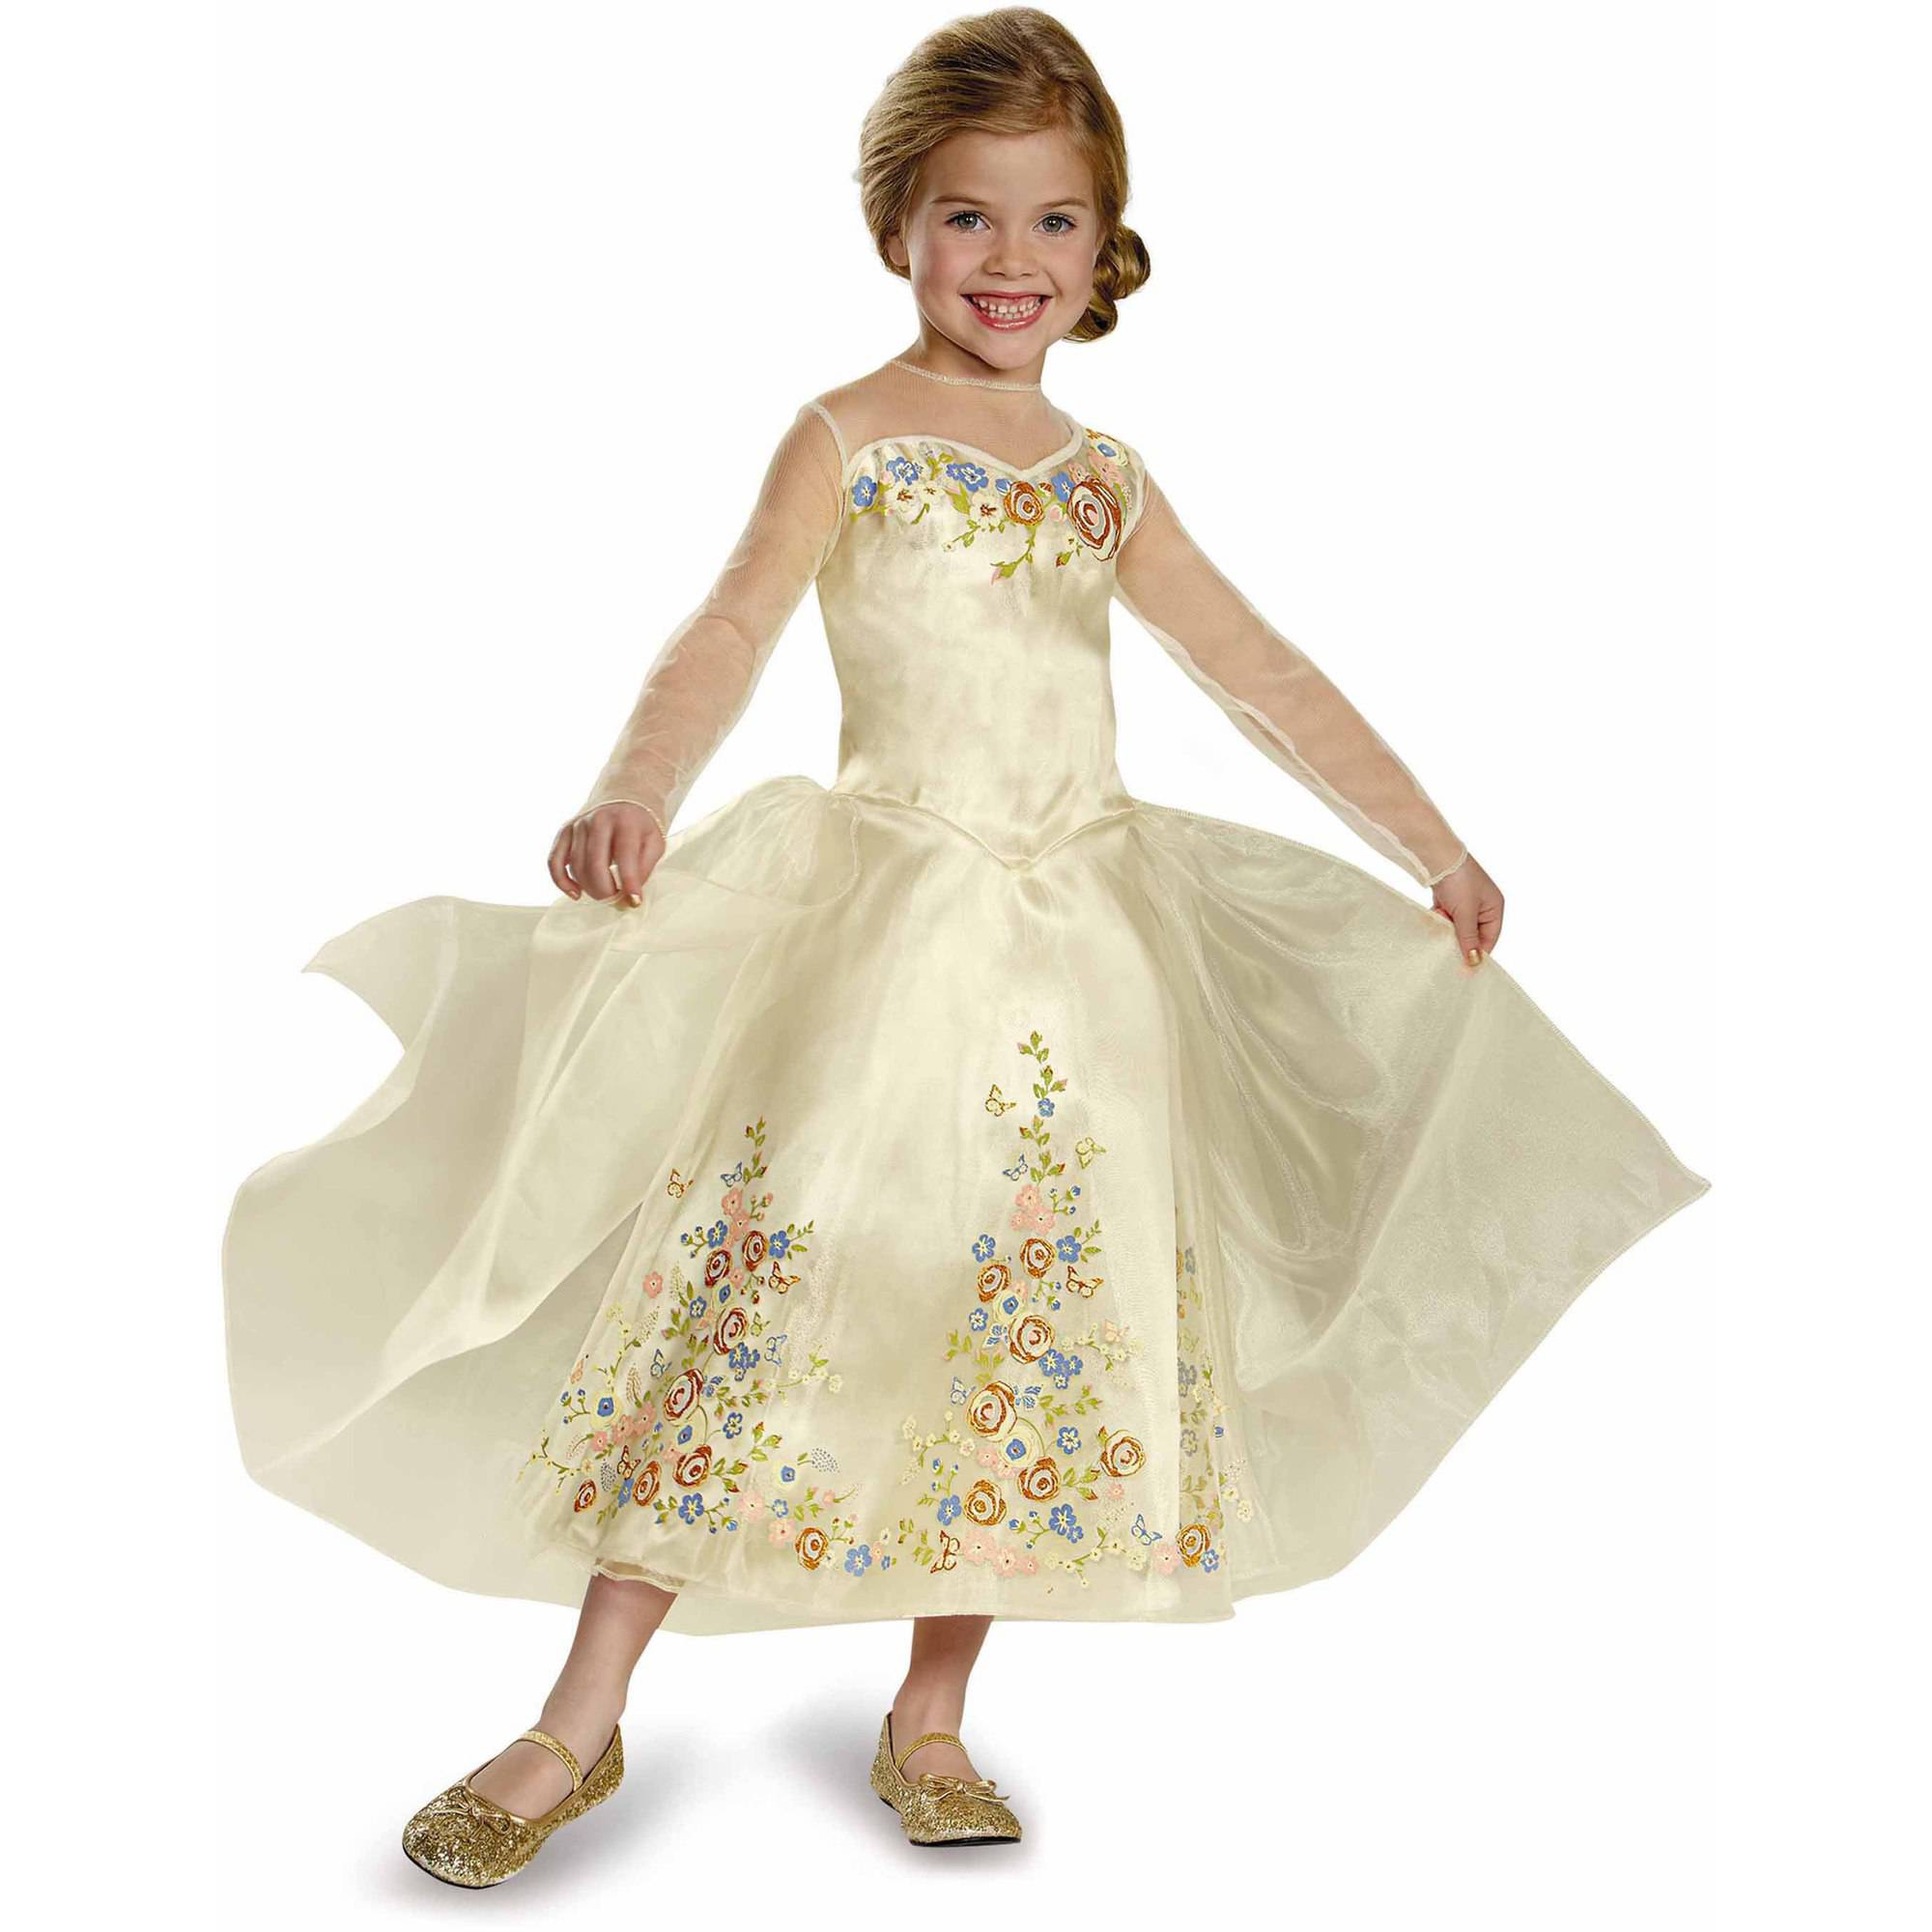 Cinderella Movie Cinderella Wedding Dress Deluxe Child Halloween Costume